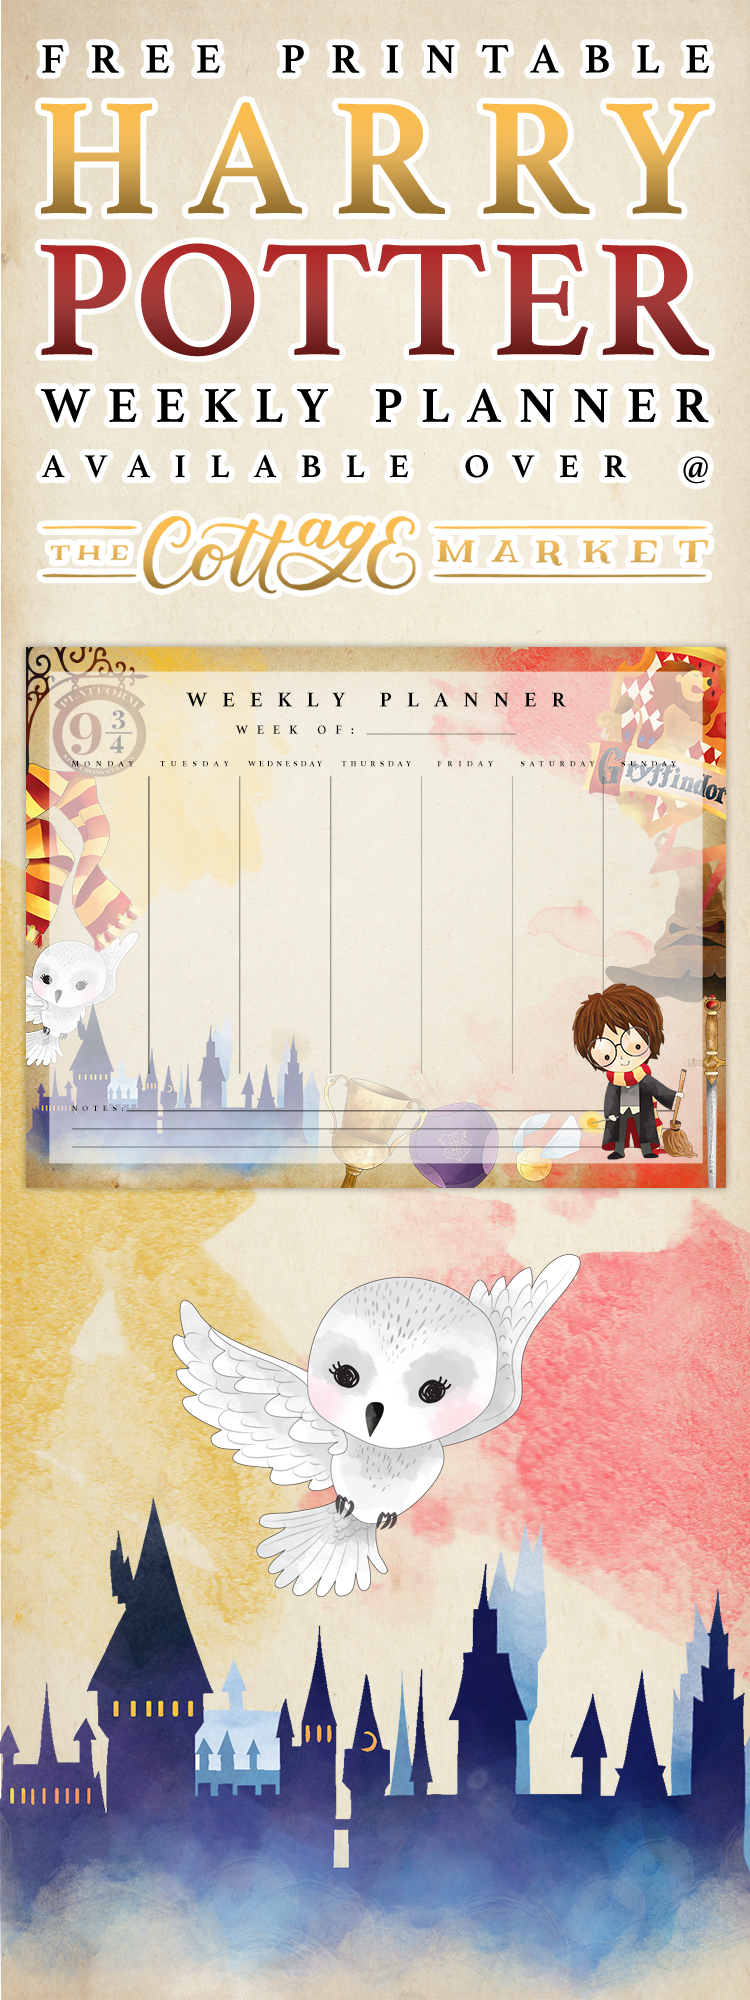 Free Printable Harry Potter Weekly Planner - The Cottage Market